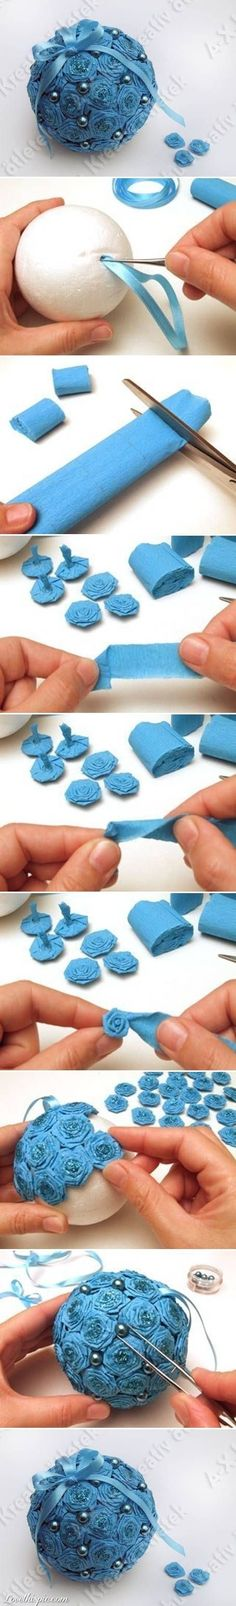 Christmas DIY: DIY Crepe Paper Flow DIY Crepe Paper Flower Ball flowers diy crafts home made easy crafts craft idea crafts ideas diy ideas diy crafts diy idea do it yourself diy projects diy decor diy craft decorations Paper Flower Ball, Crepe Paper Flowers, Fabric Flowers, Holiday Crafts, Christmas Crafts, Christmas Decorations, Christmas Ornaments, Craft Decorations, Xmas